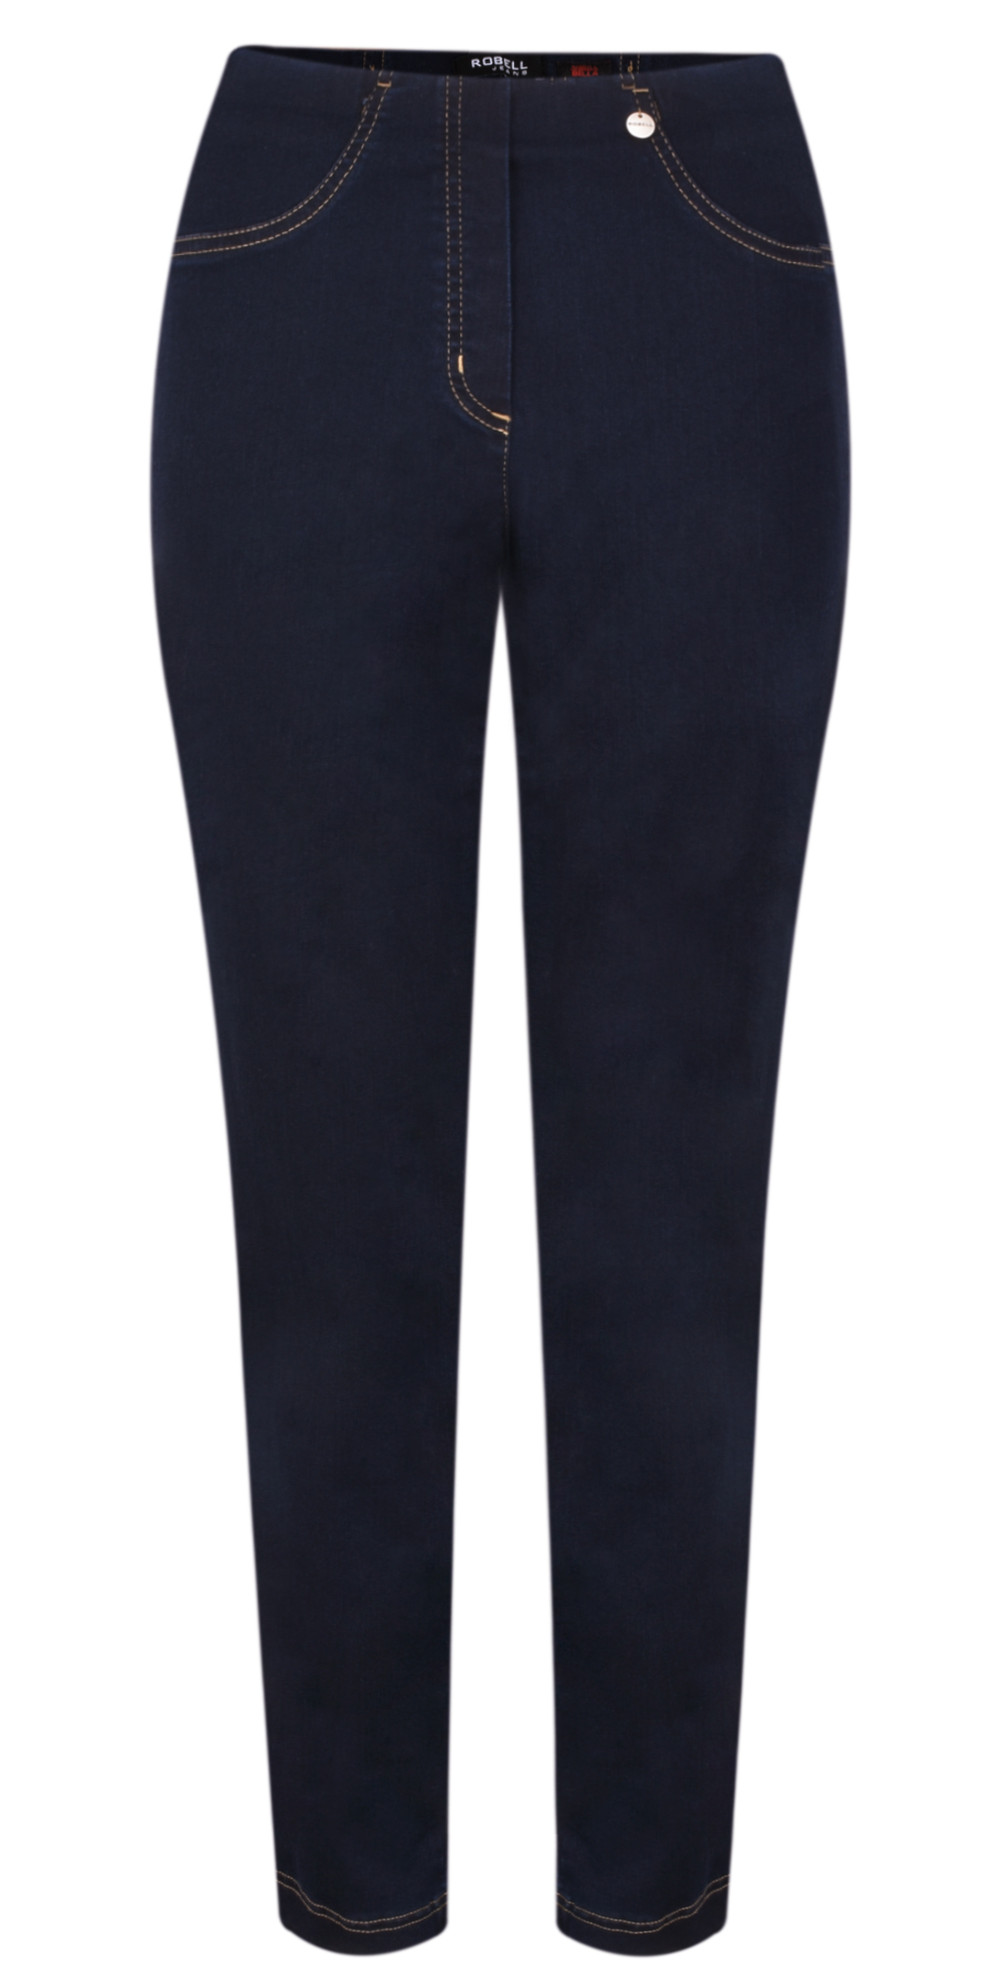 40d165f1f8fa Robell Trousers Bella Slim Fit Full Length Jean in Navy Contrast